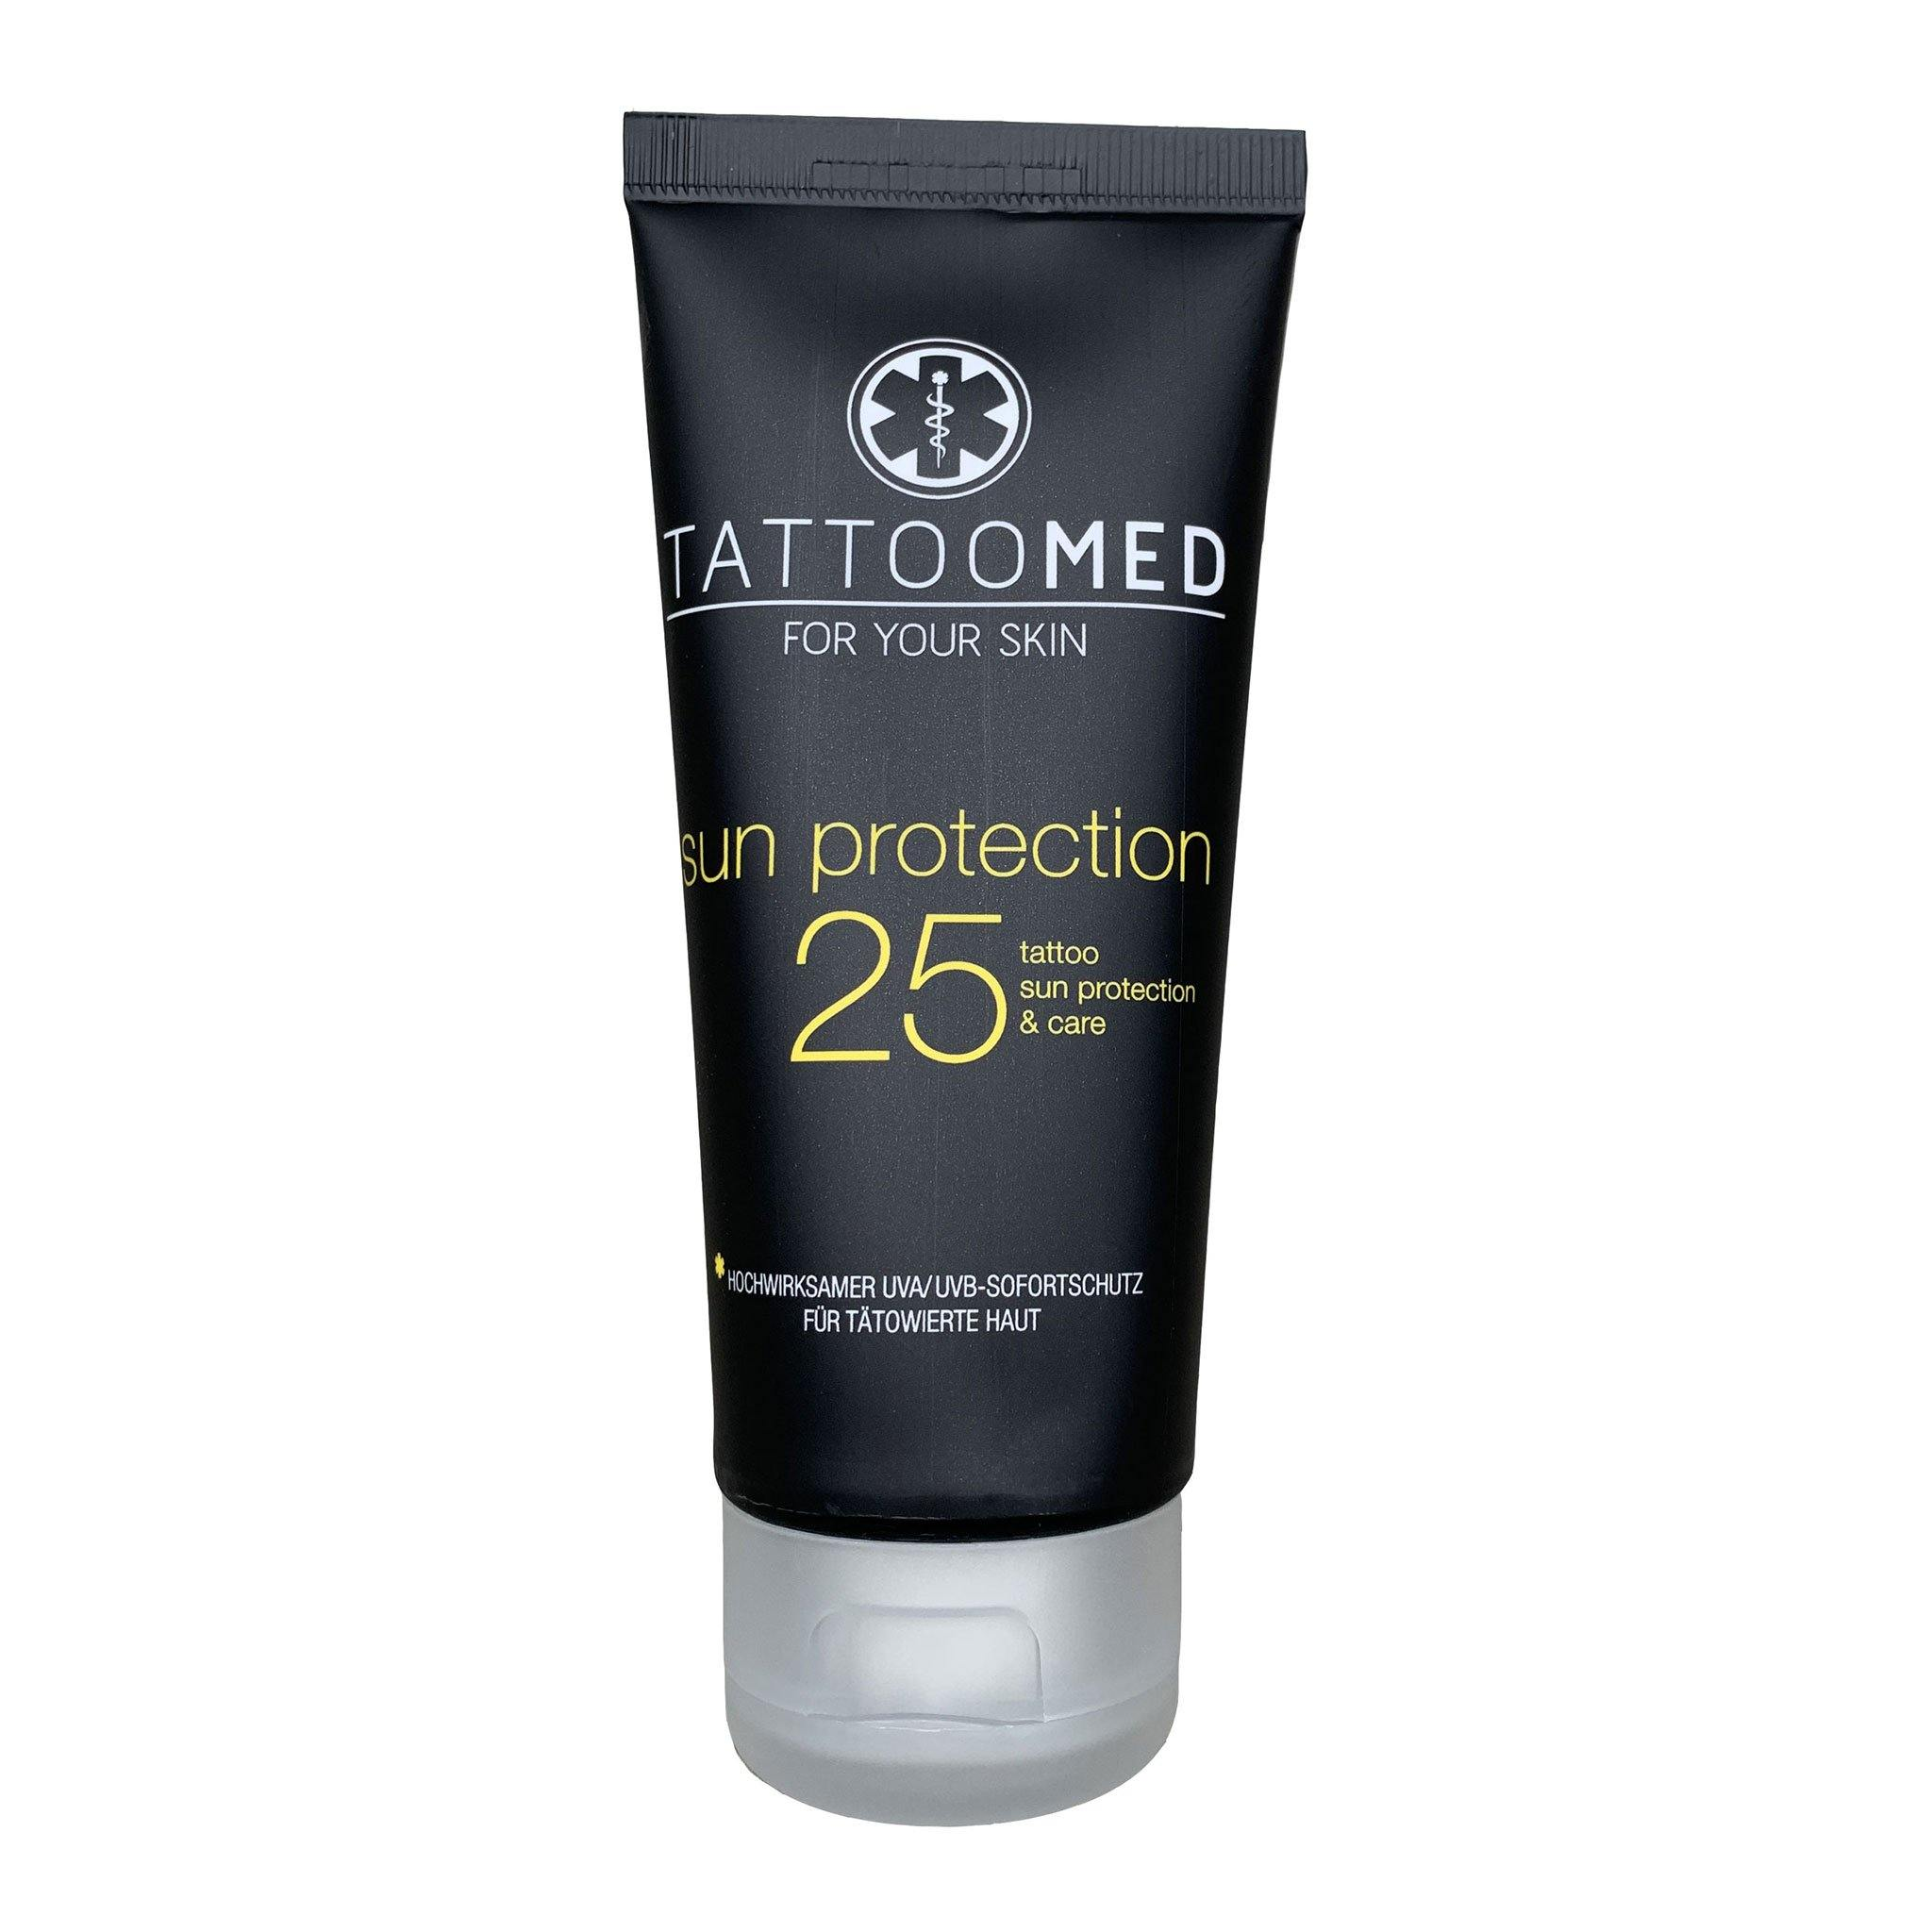 RIMFROST® - TattooMed® Sun Protection 25